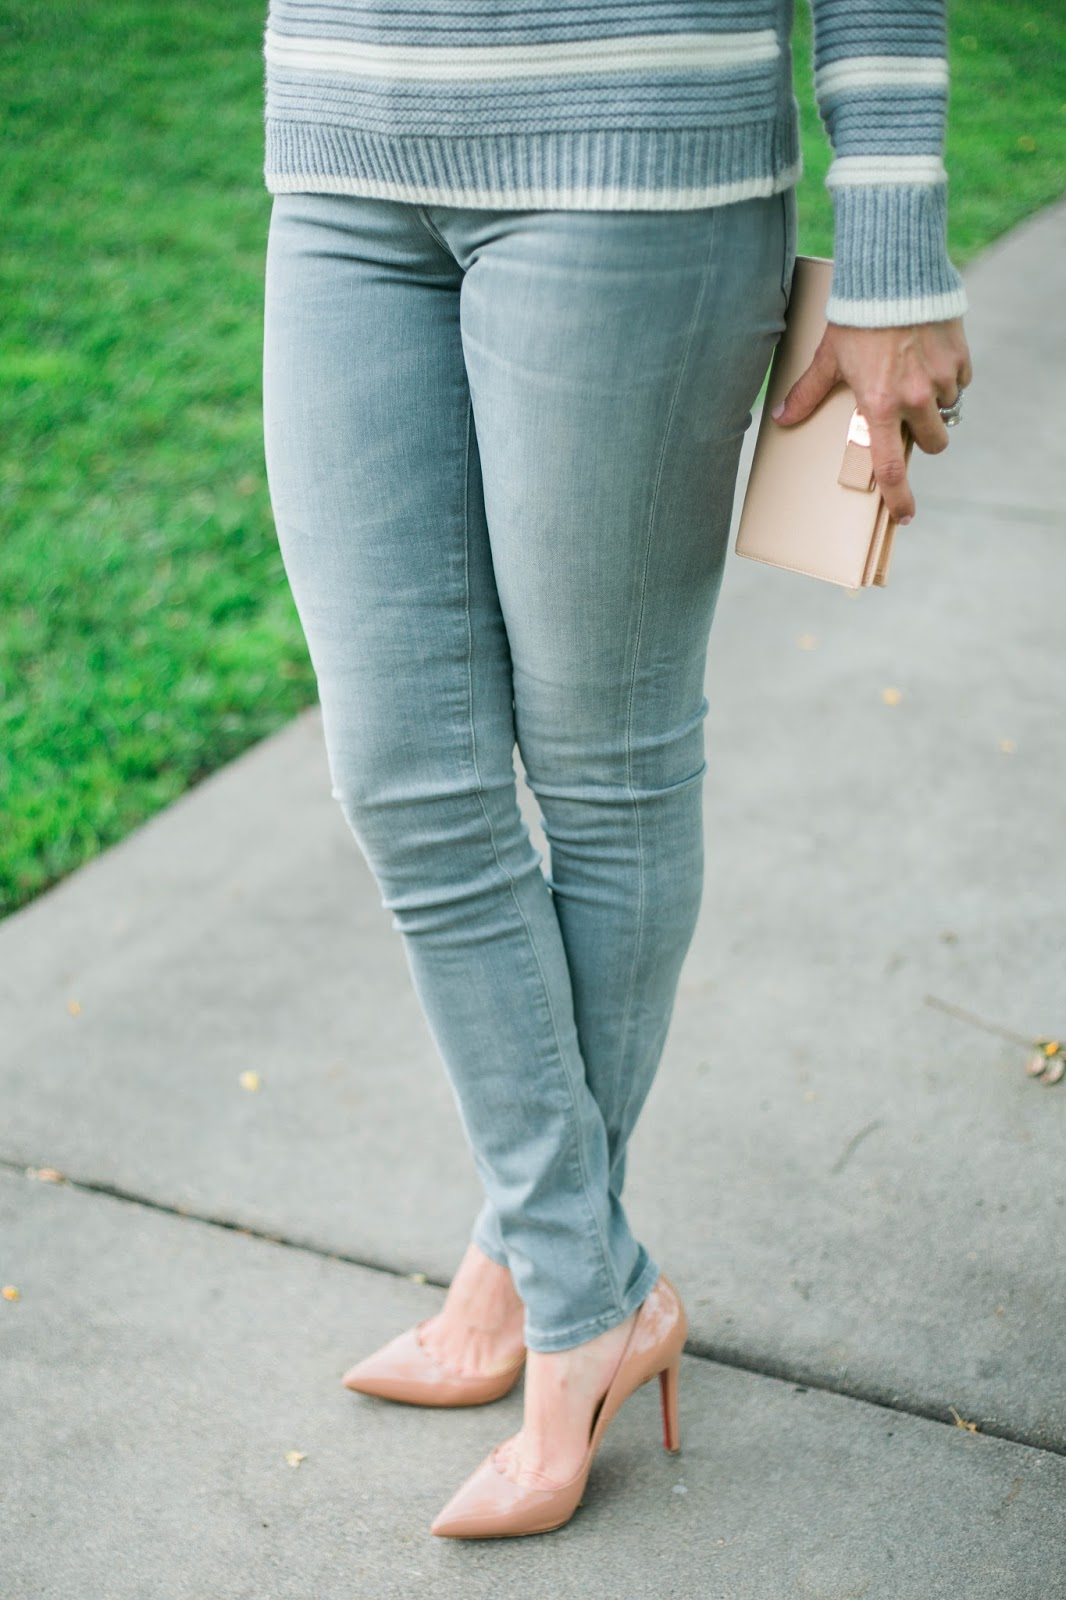 nude Louboutin and jeans